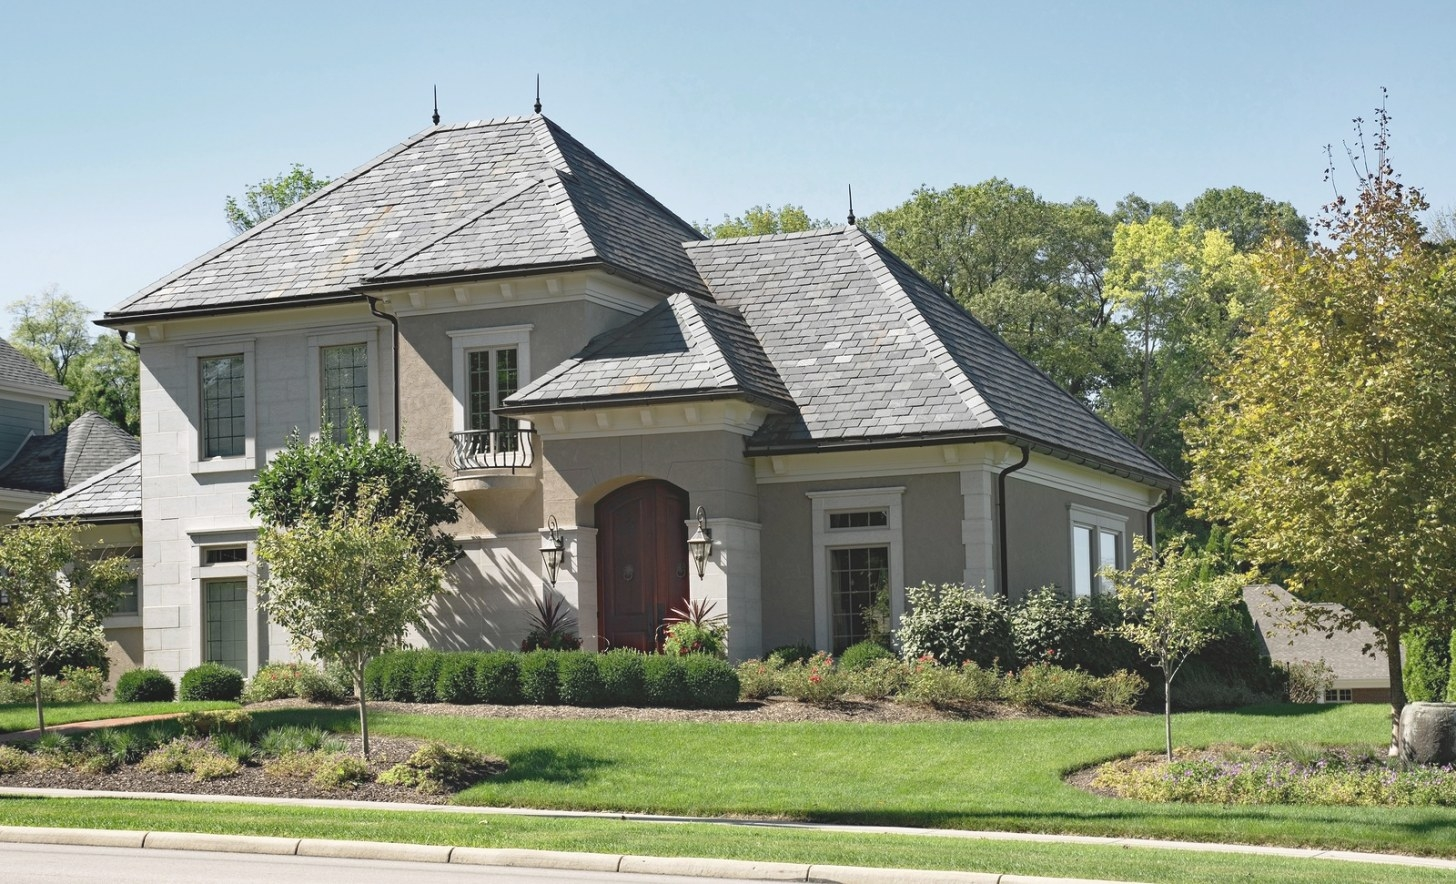 Stucco Repair In Nj: The Proper Solutions For 3 Common intended for Stucco And Stone Homes